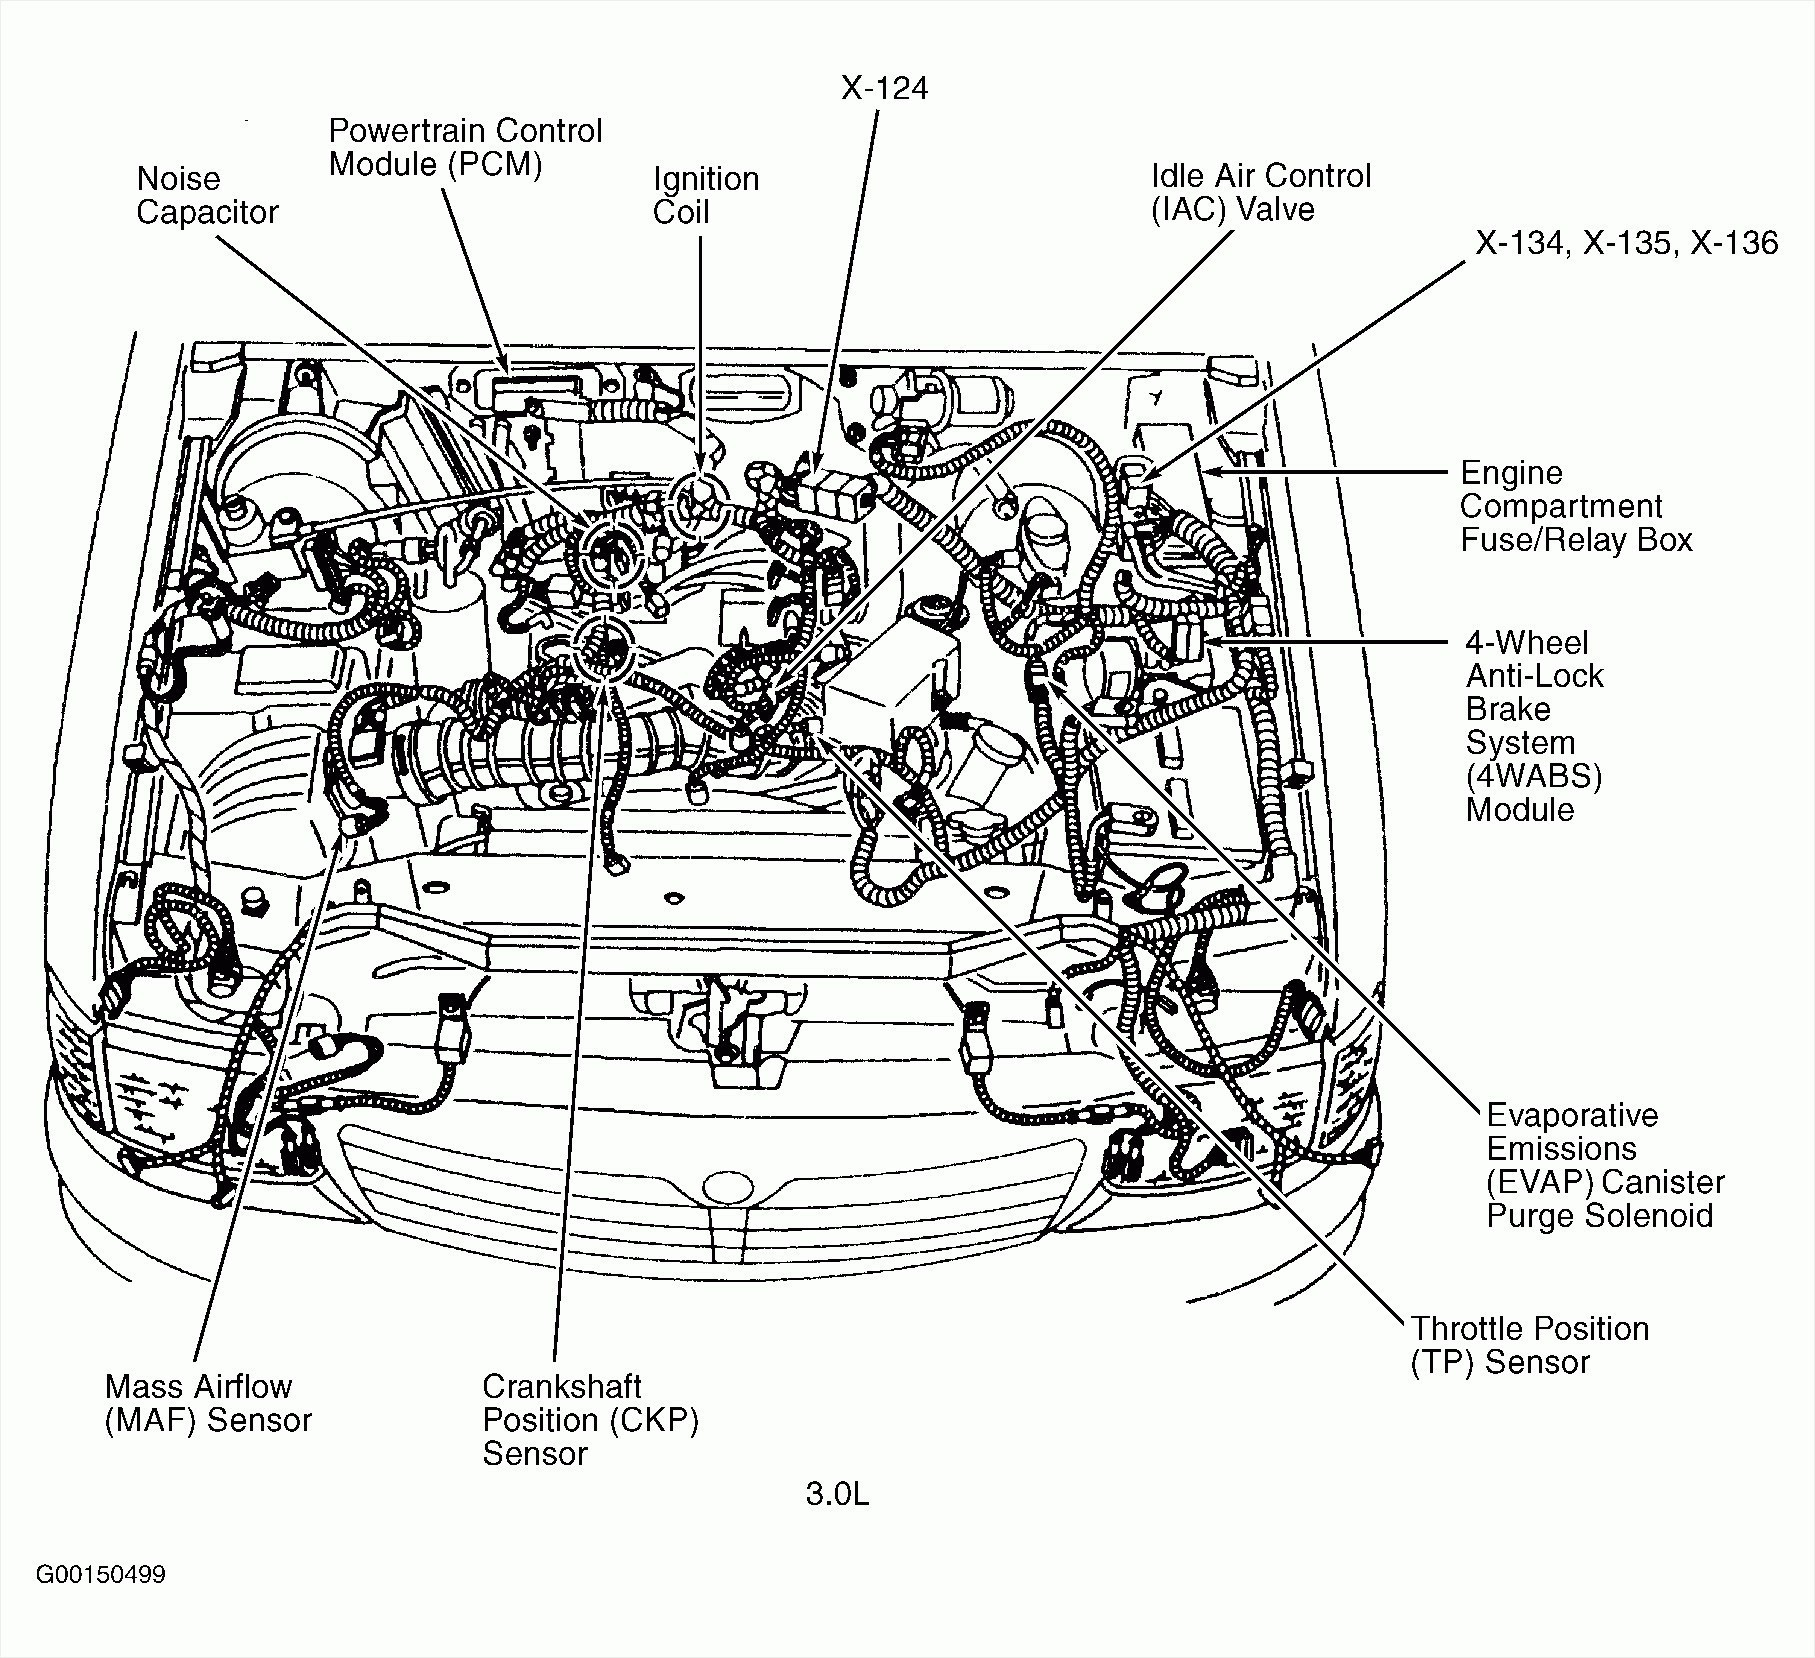 2000 Nissan Maxima Engine Diagram 2007 Maxima Engine Diagram Wiring Diagram toolbox Of 2000 Nissan Maxima Engine Diagram